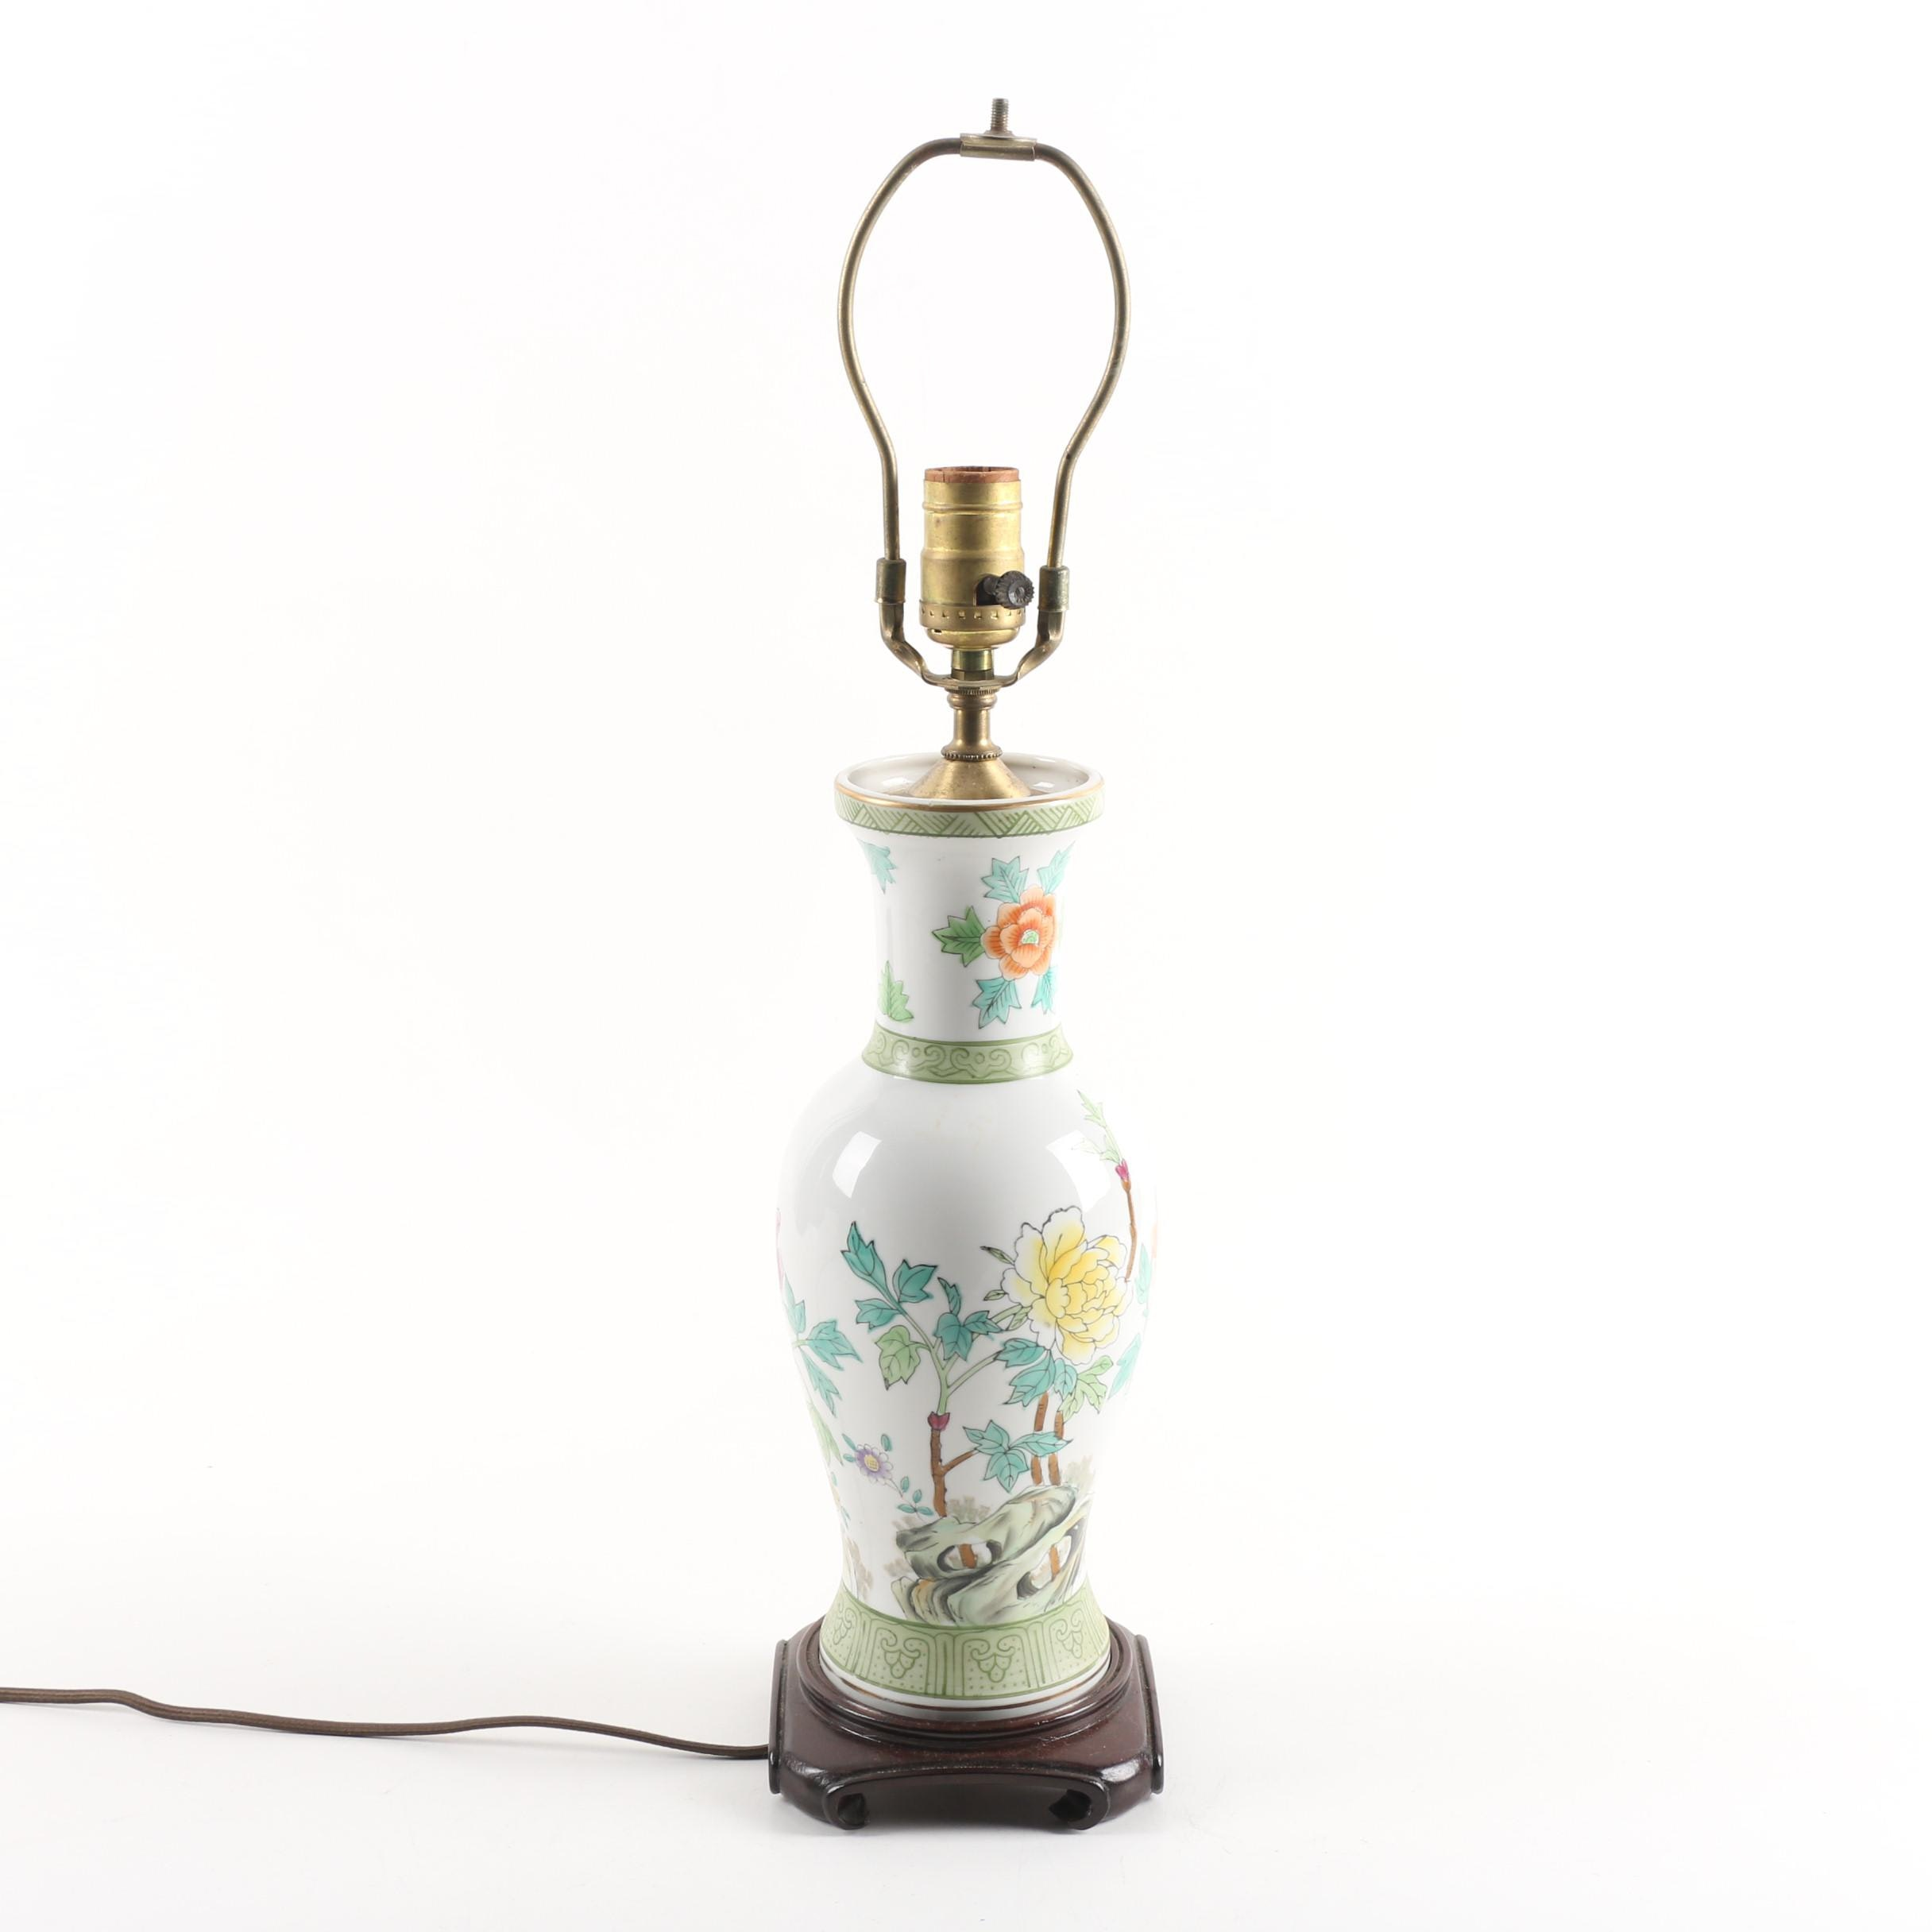 Chinoiserie Hand-Painted Vase Form Porcelain Table Lamp